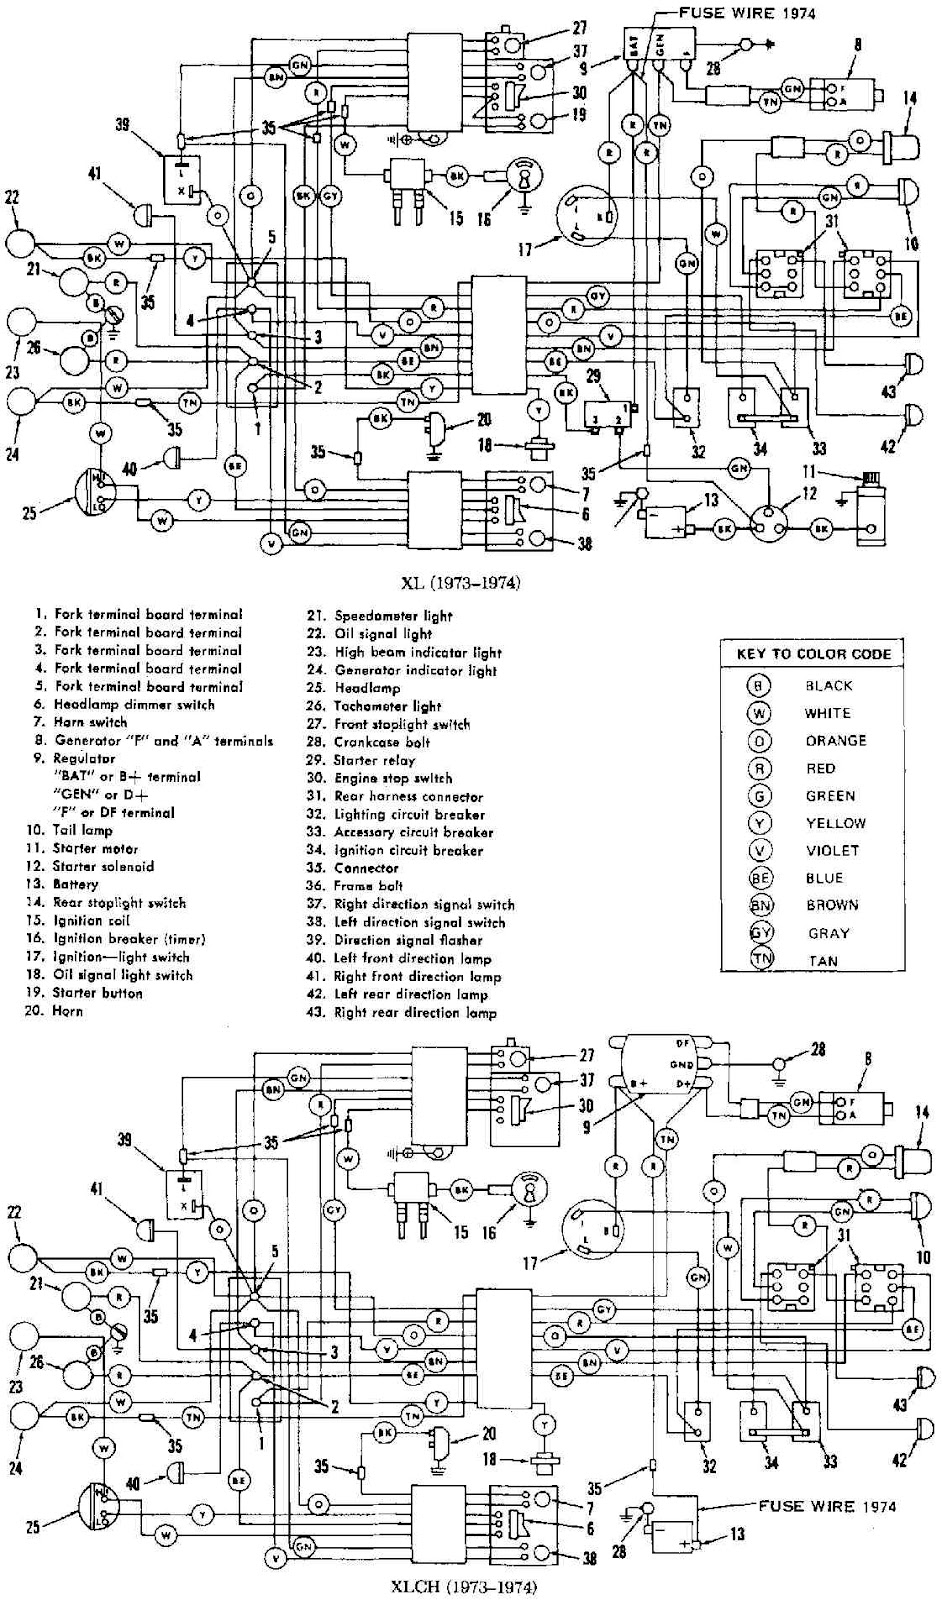 1983 Harley Sportster Wiring Diagram - Wiring Diagrams 24 on